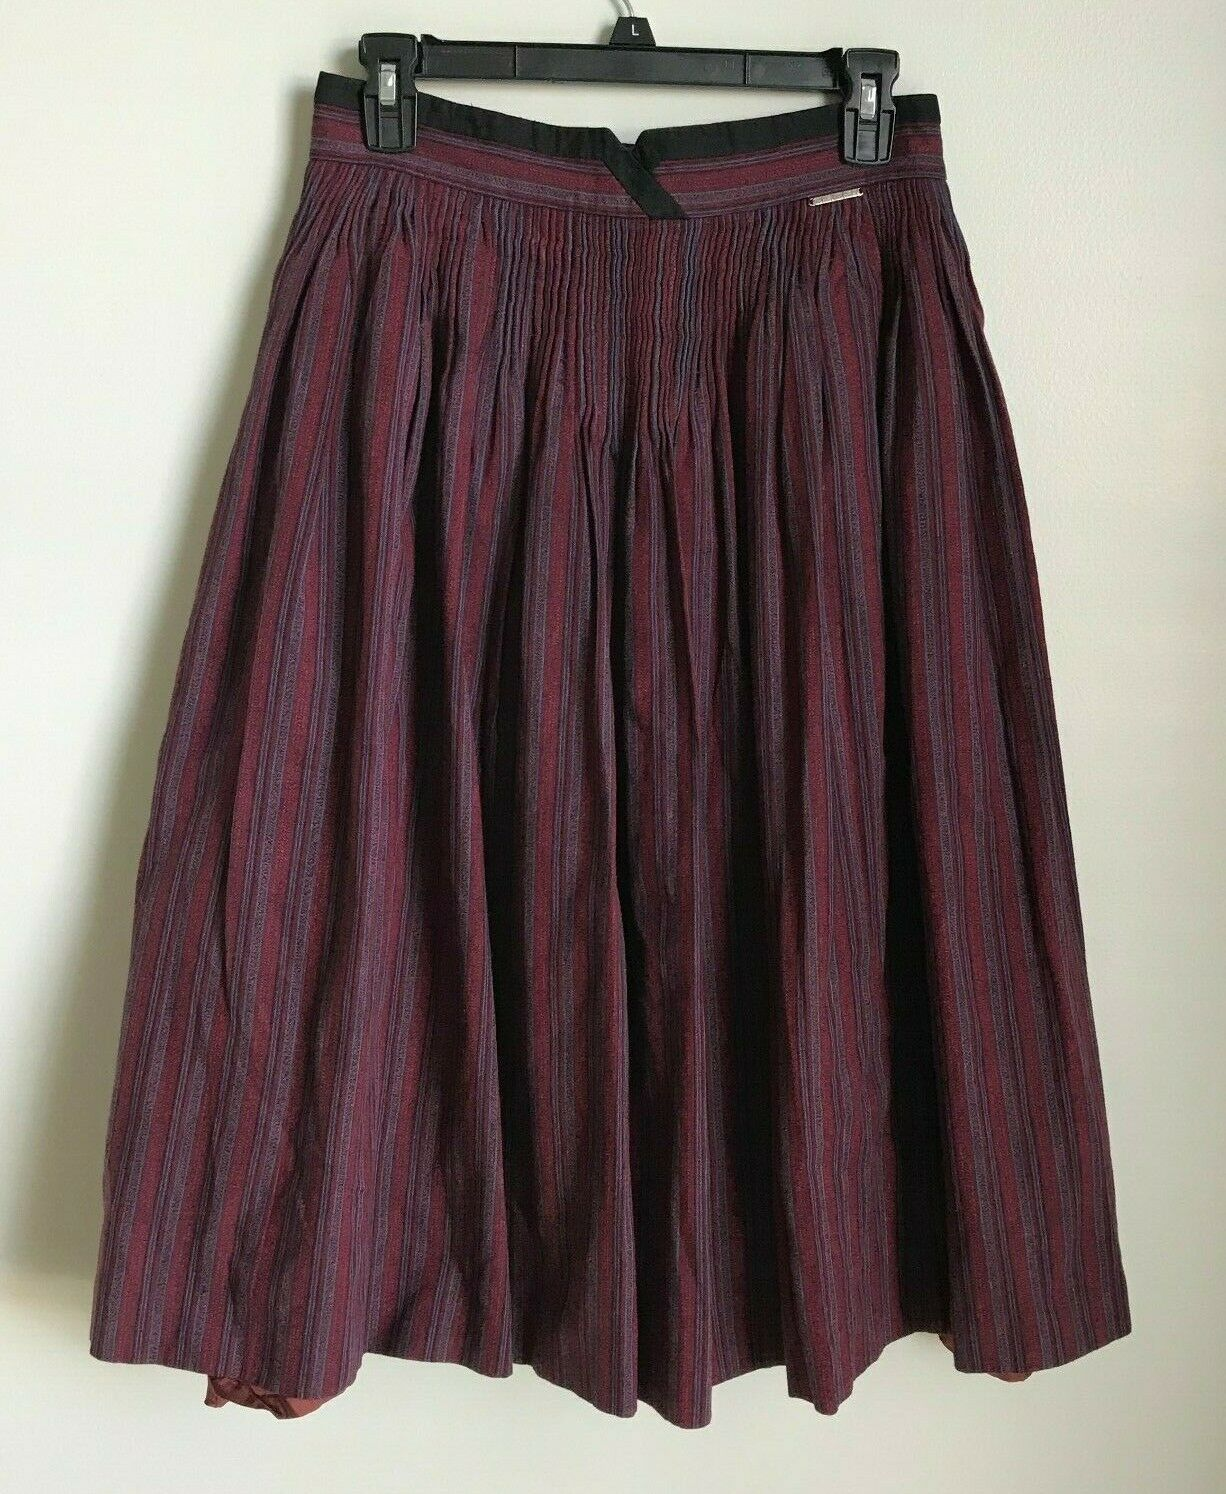 Geiger Tyrol 42 Maroon Pleated Striped Skirt Made in Austria